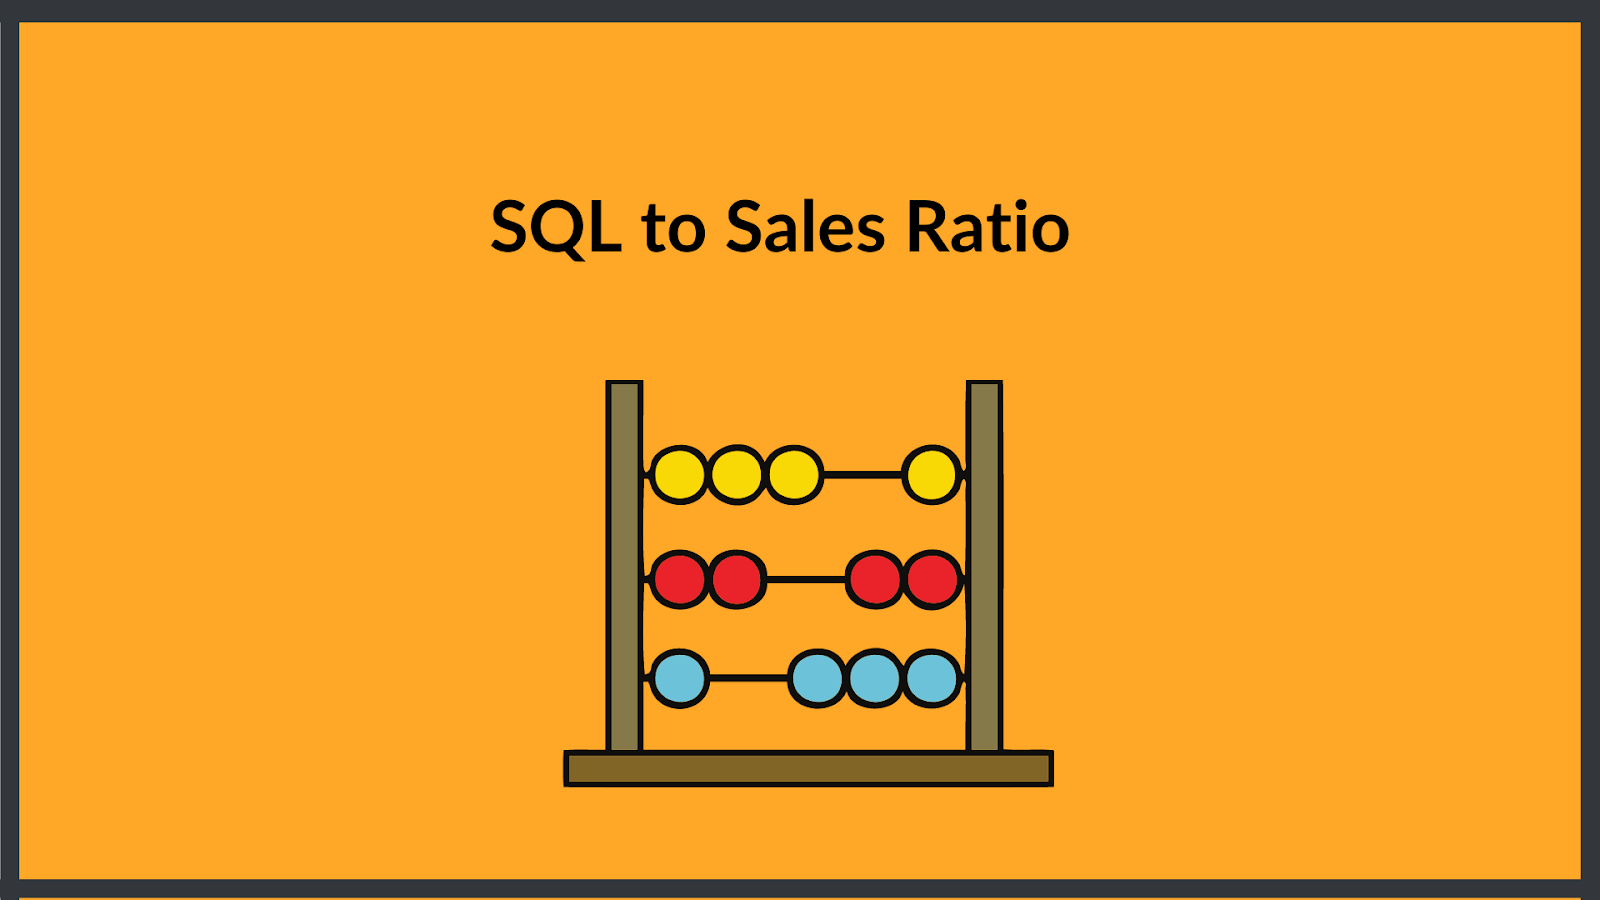 SQL to sales ratio